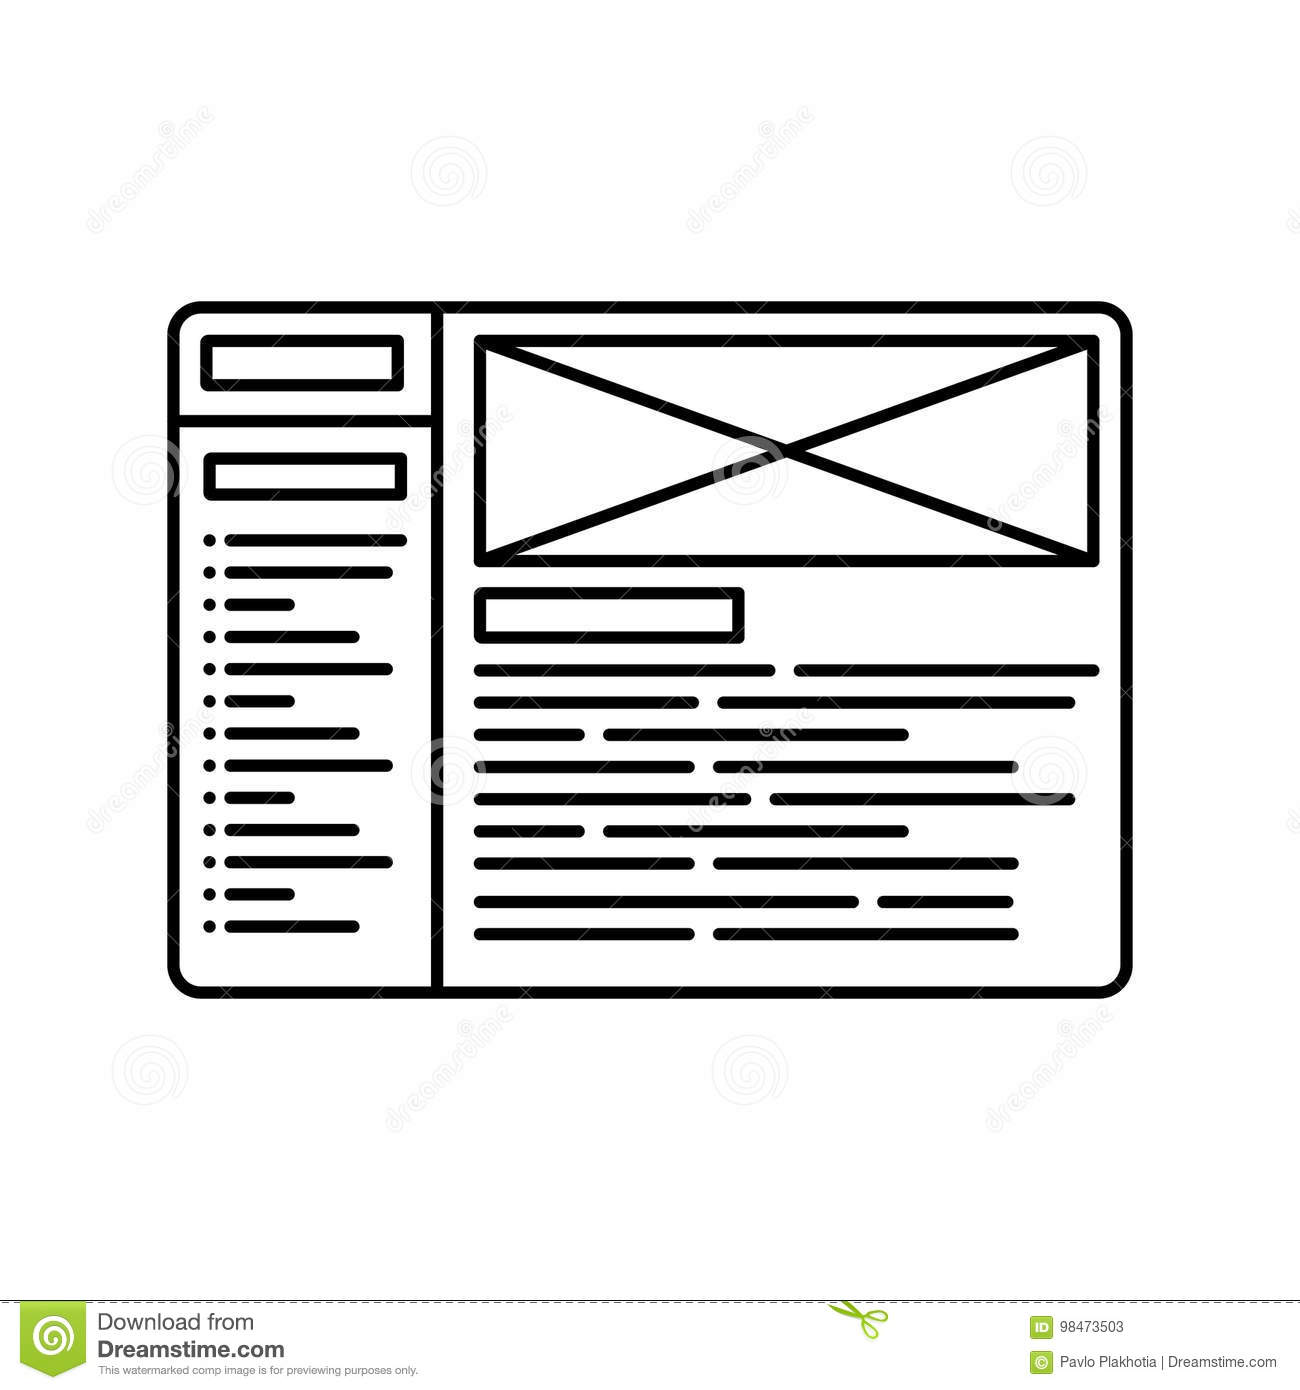 Website wireframe line icon. Outline illustration for website or logo design template